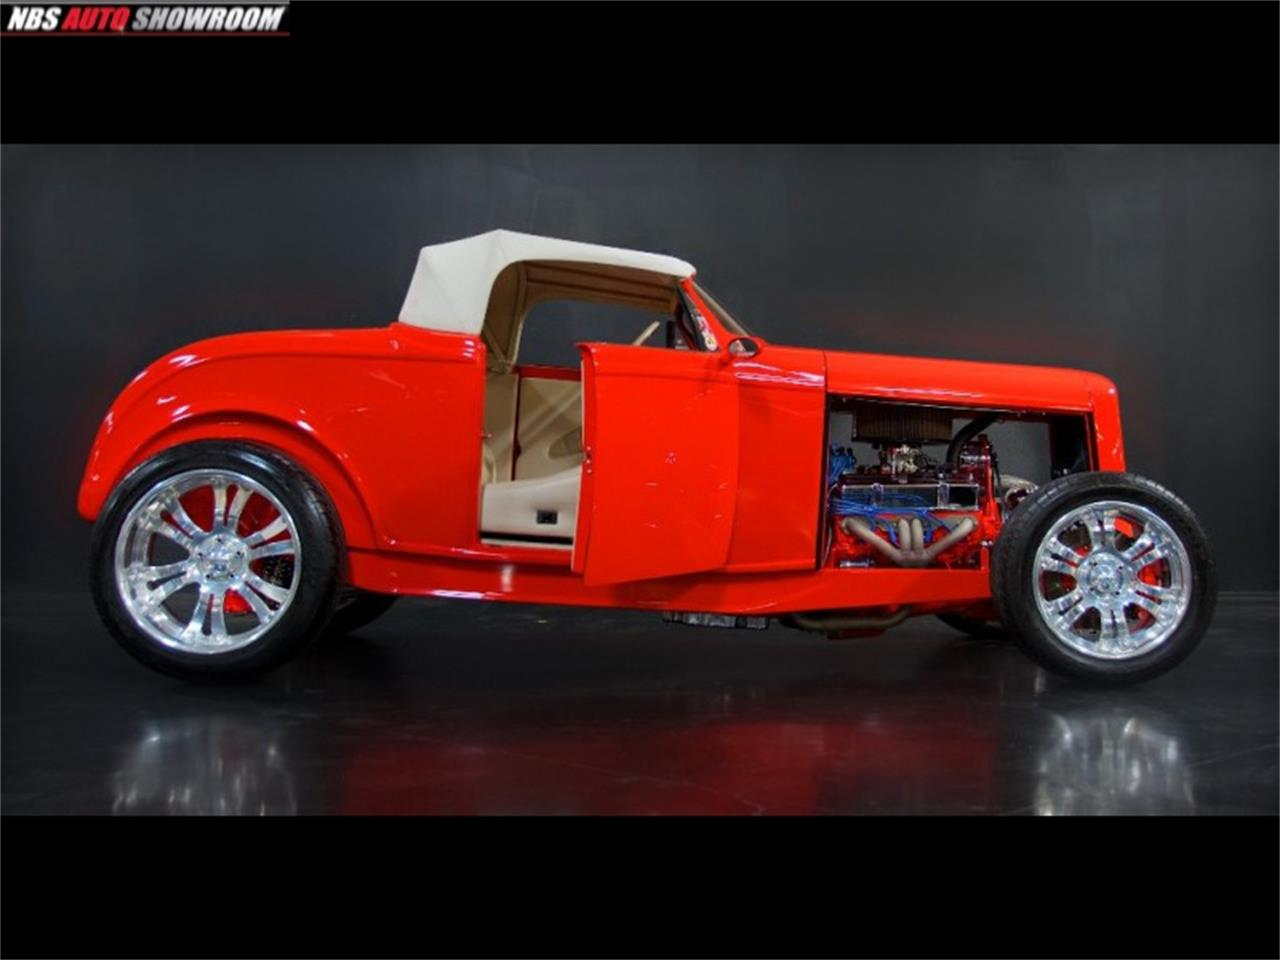 Large Picture of '32 Roadster Offered by NBS Auto Showroom - QY4R